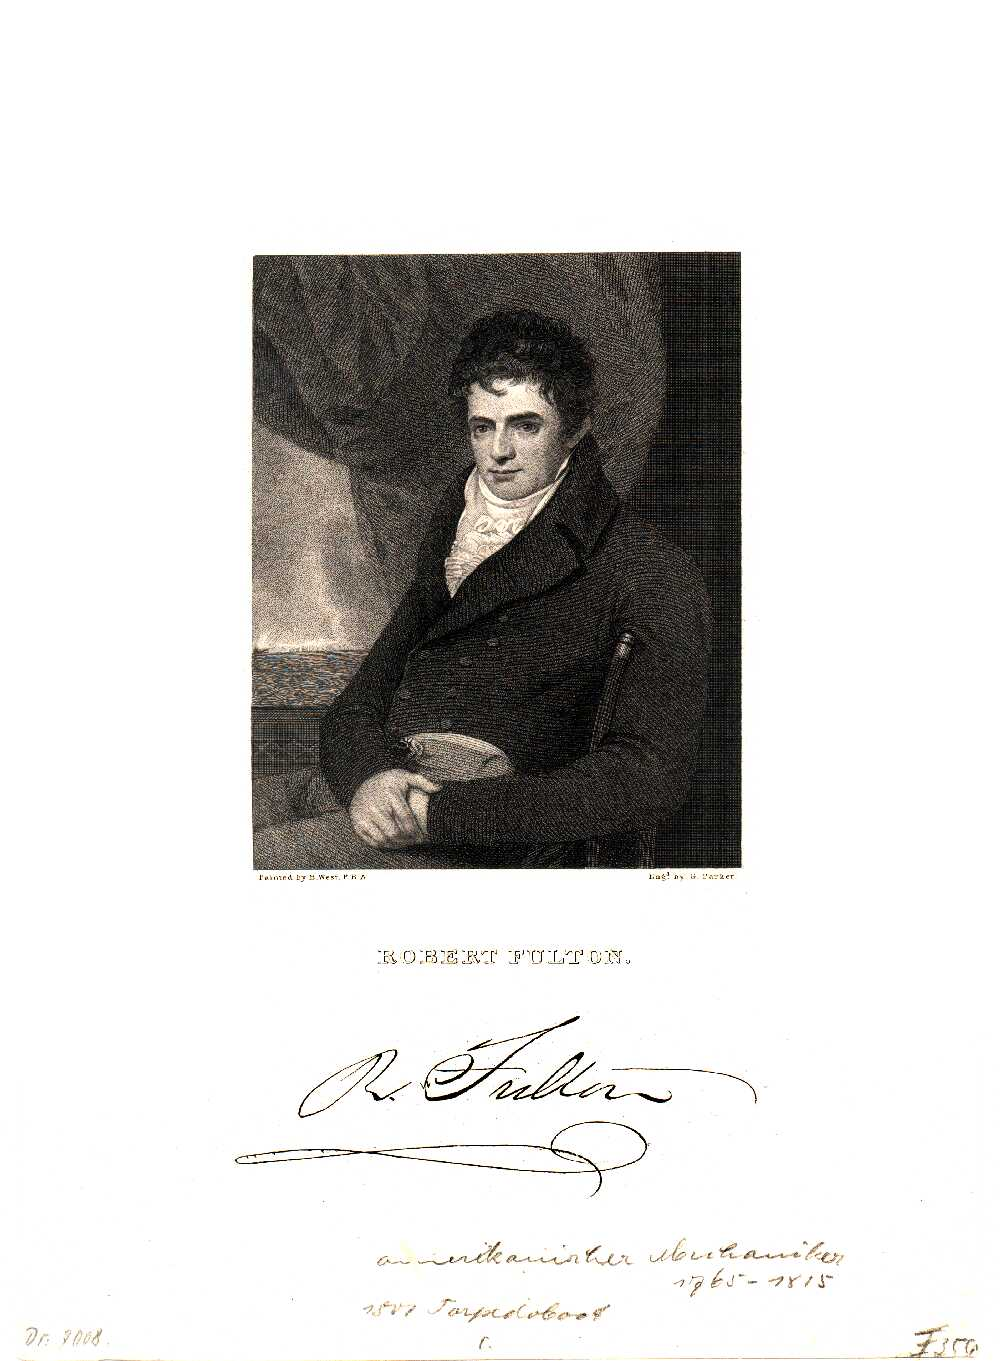 Portrait of Robert Fulton,  Image number:SIL14-F006-03a